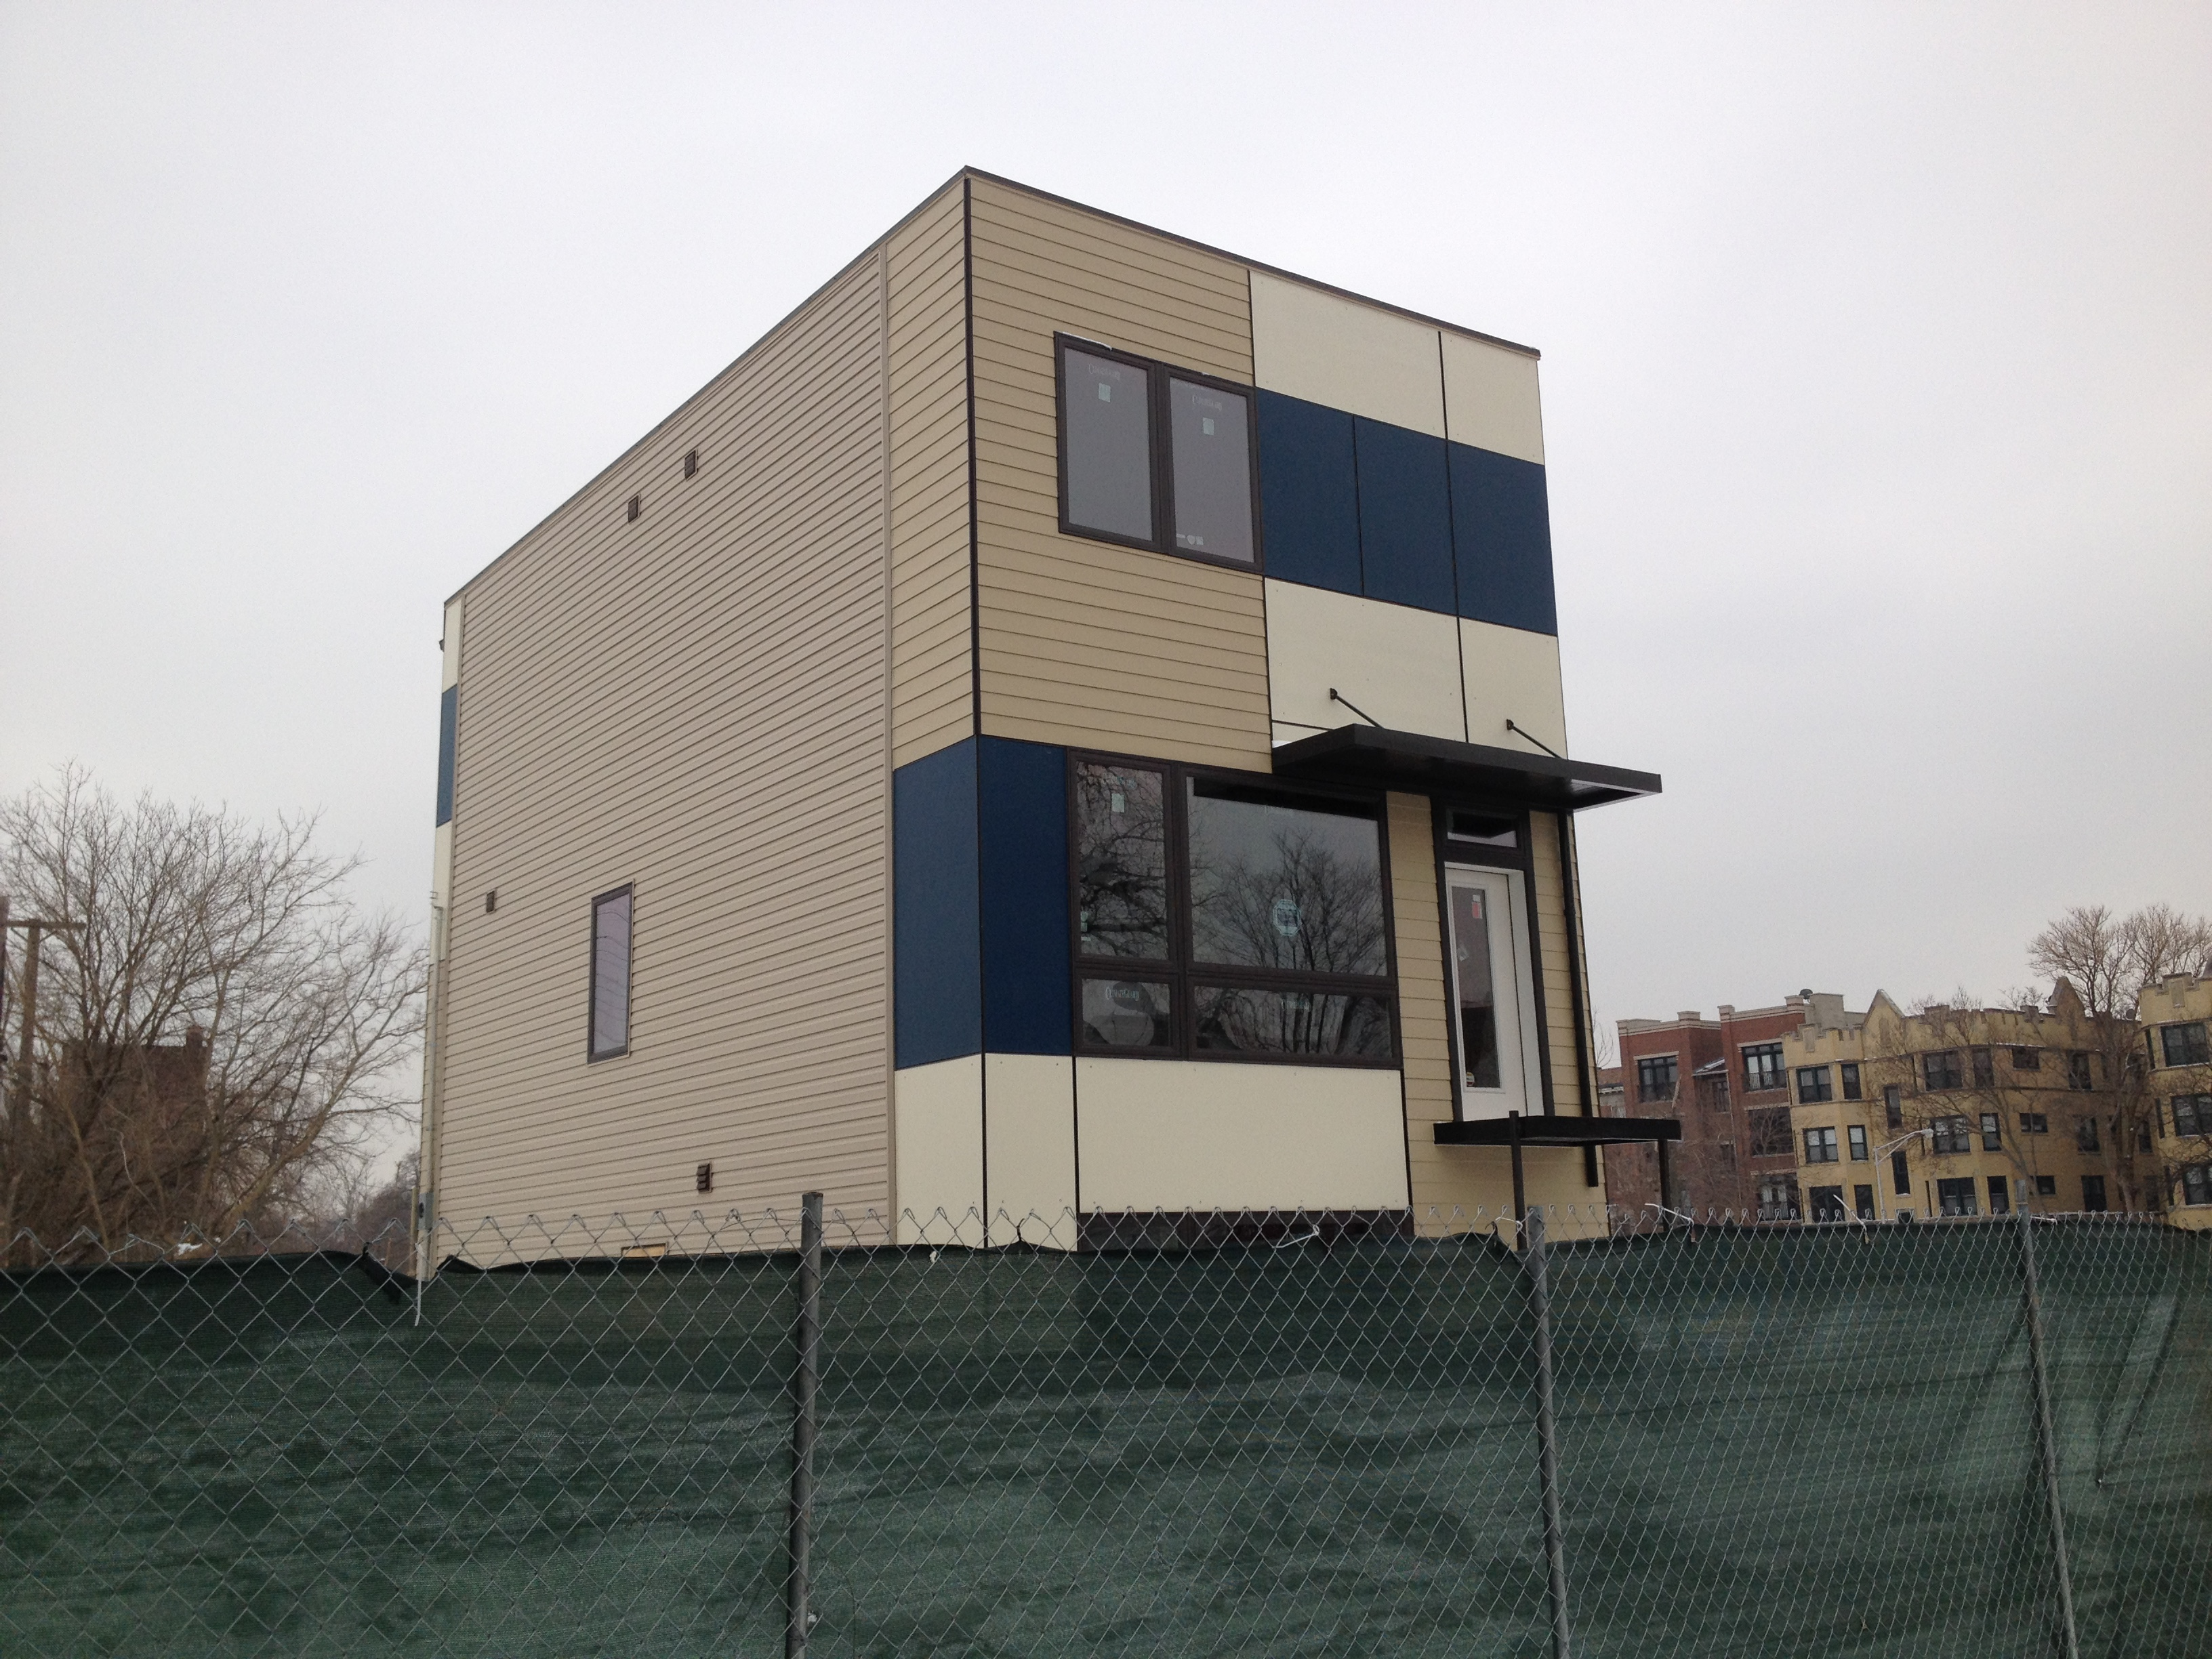 1361 East Marquette Road in the Woodlawn Neighborhood in Chicago. Currently Under Construction.